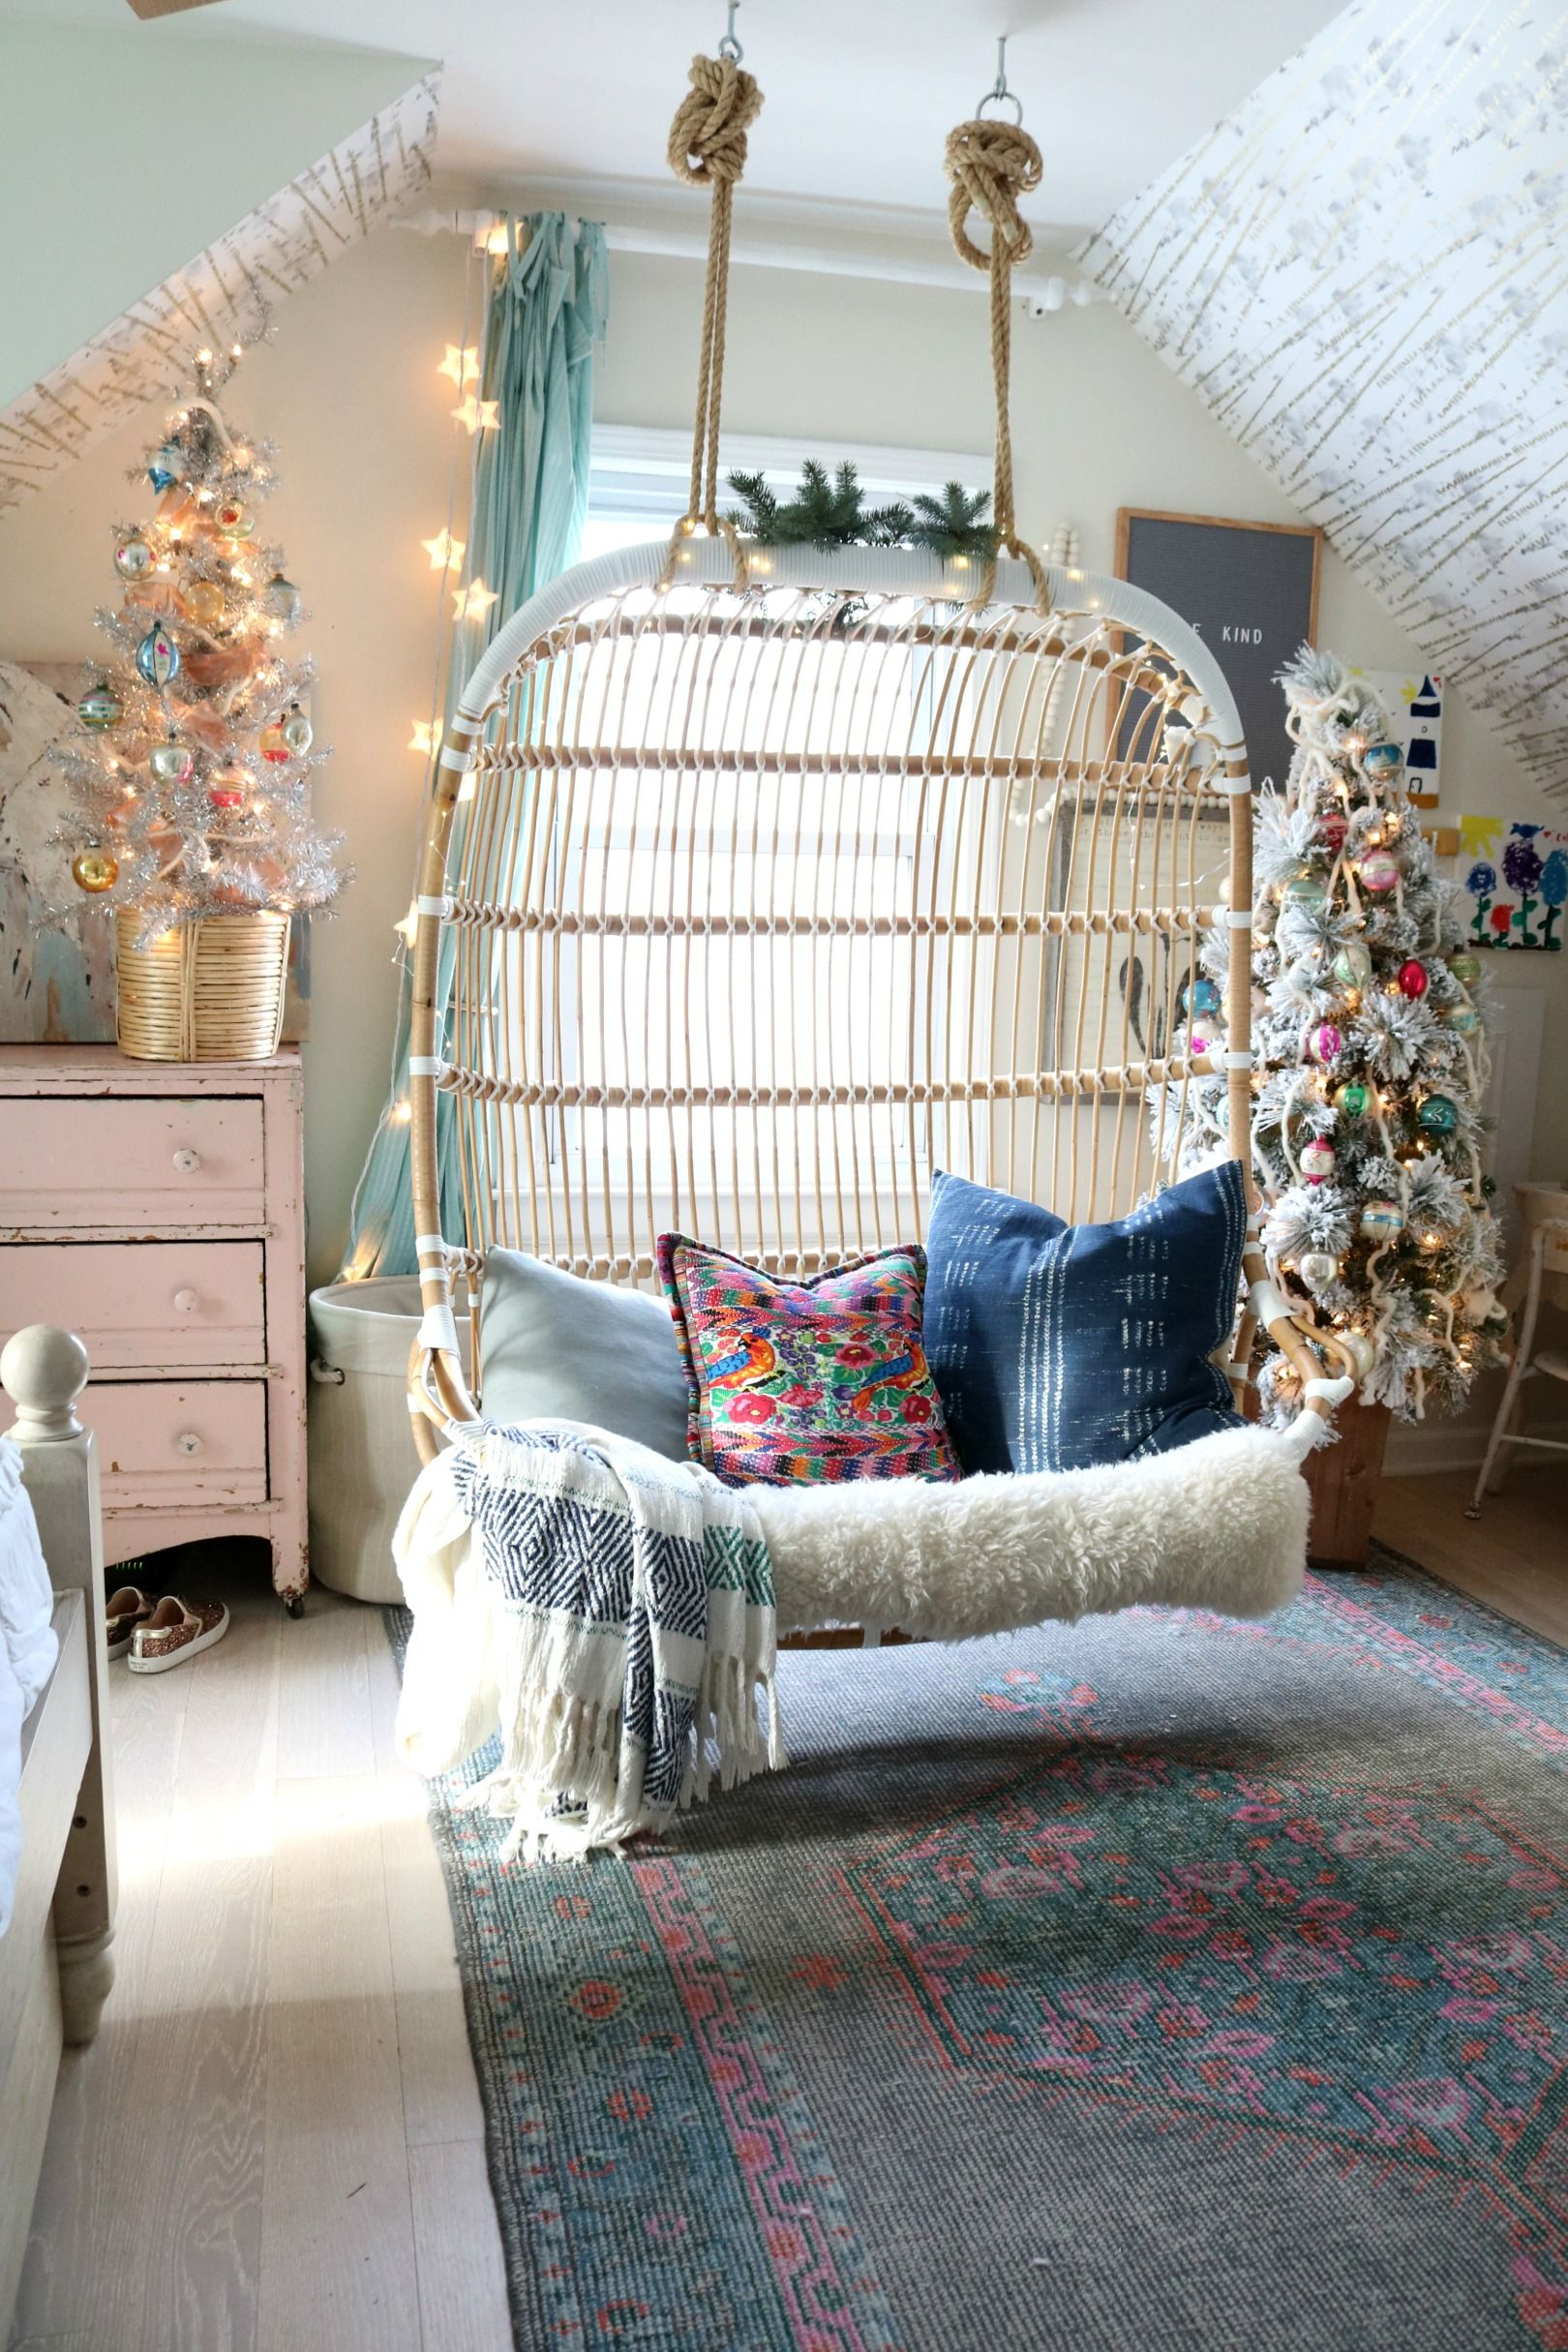 Small Teens Bedroom Decorating Ideas Christmas on teenage boys bedroom ideas, bedroom wall mural ideas, cheap teenage bedroom ideas, diy teen bedroom ideas, teenage girl bedroom ideas, modern teens bedroom design ideas, small tween girls bedroom sharing, small bedroom design ideas, bedroom makeover ideas, bedroom desk ideas, teenage room decorating ideas, small teenage bedroom designs, bedroom headboard feature wall ideas, teen bedroom decor ideas, small teenage girl bedroom, blue and gray teen bedroom ideas, storage for small bedrooms ideas, small boys bedroom ideas, small bedrooms for teens, horse themed bedroom ideas,